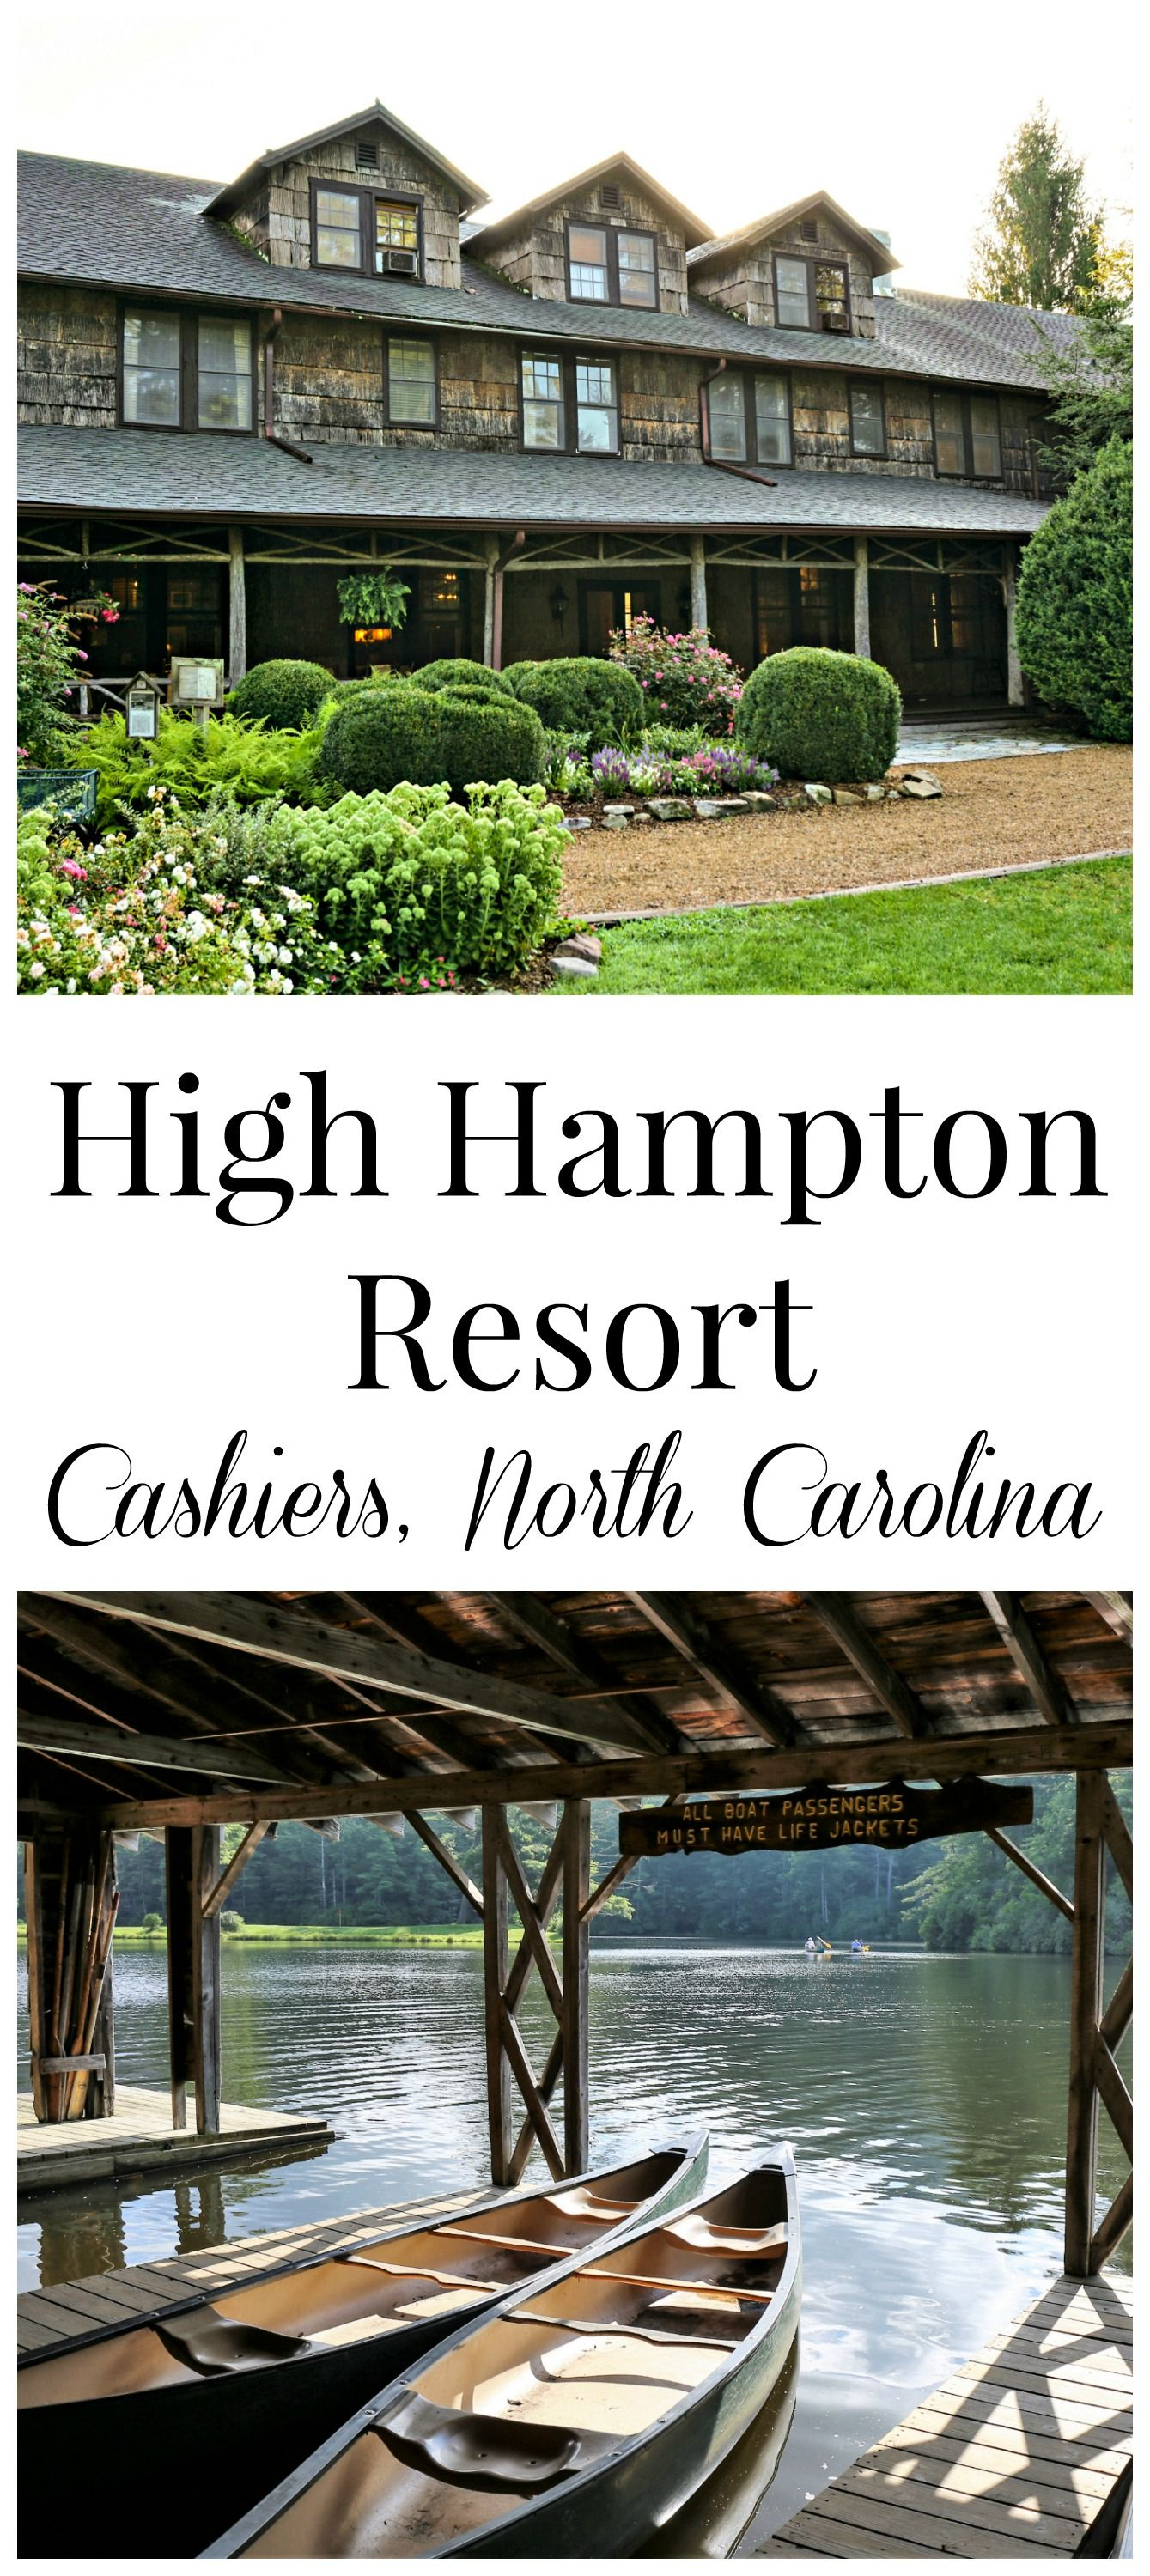 The High Hampton Resort In Cashiers, NC Is A Magical